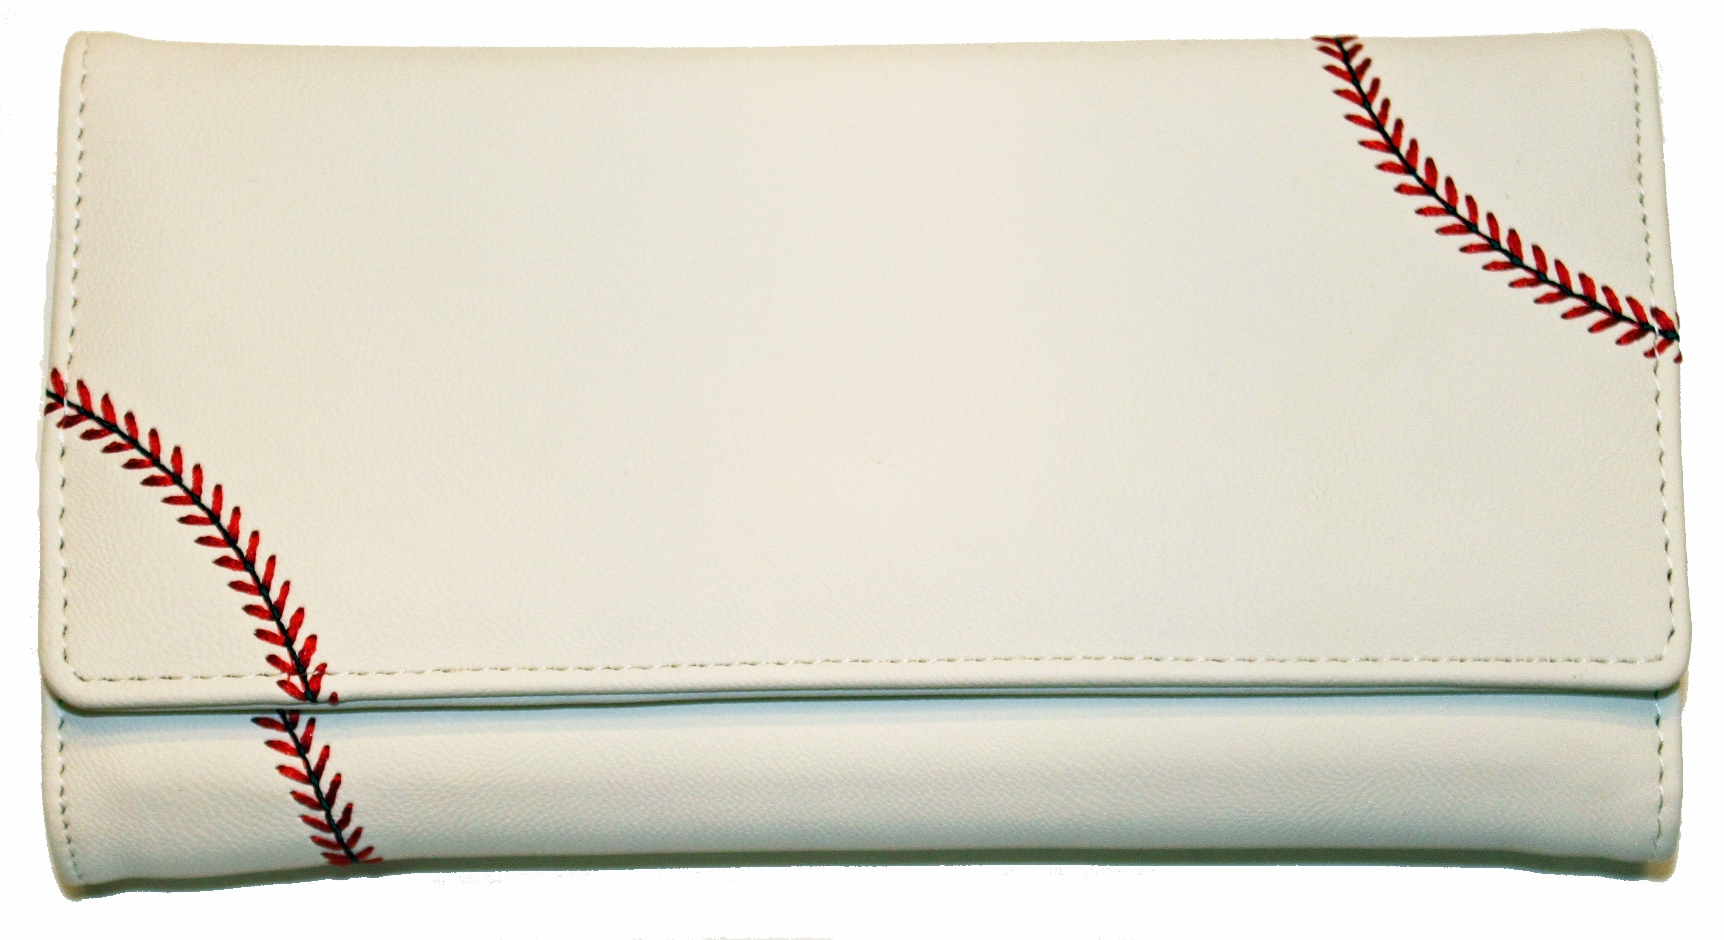 Women's White Baseball Wallet